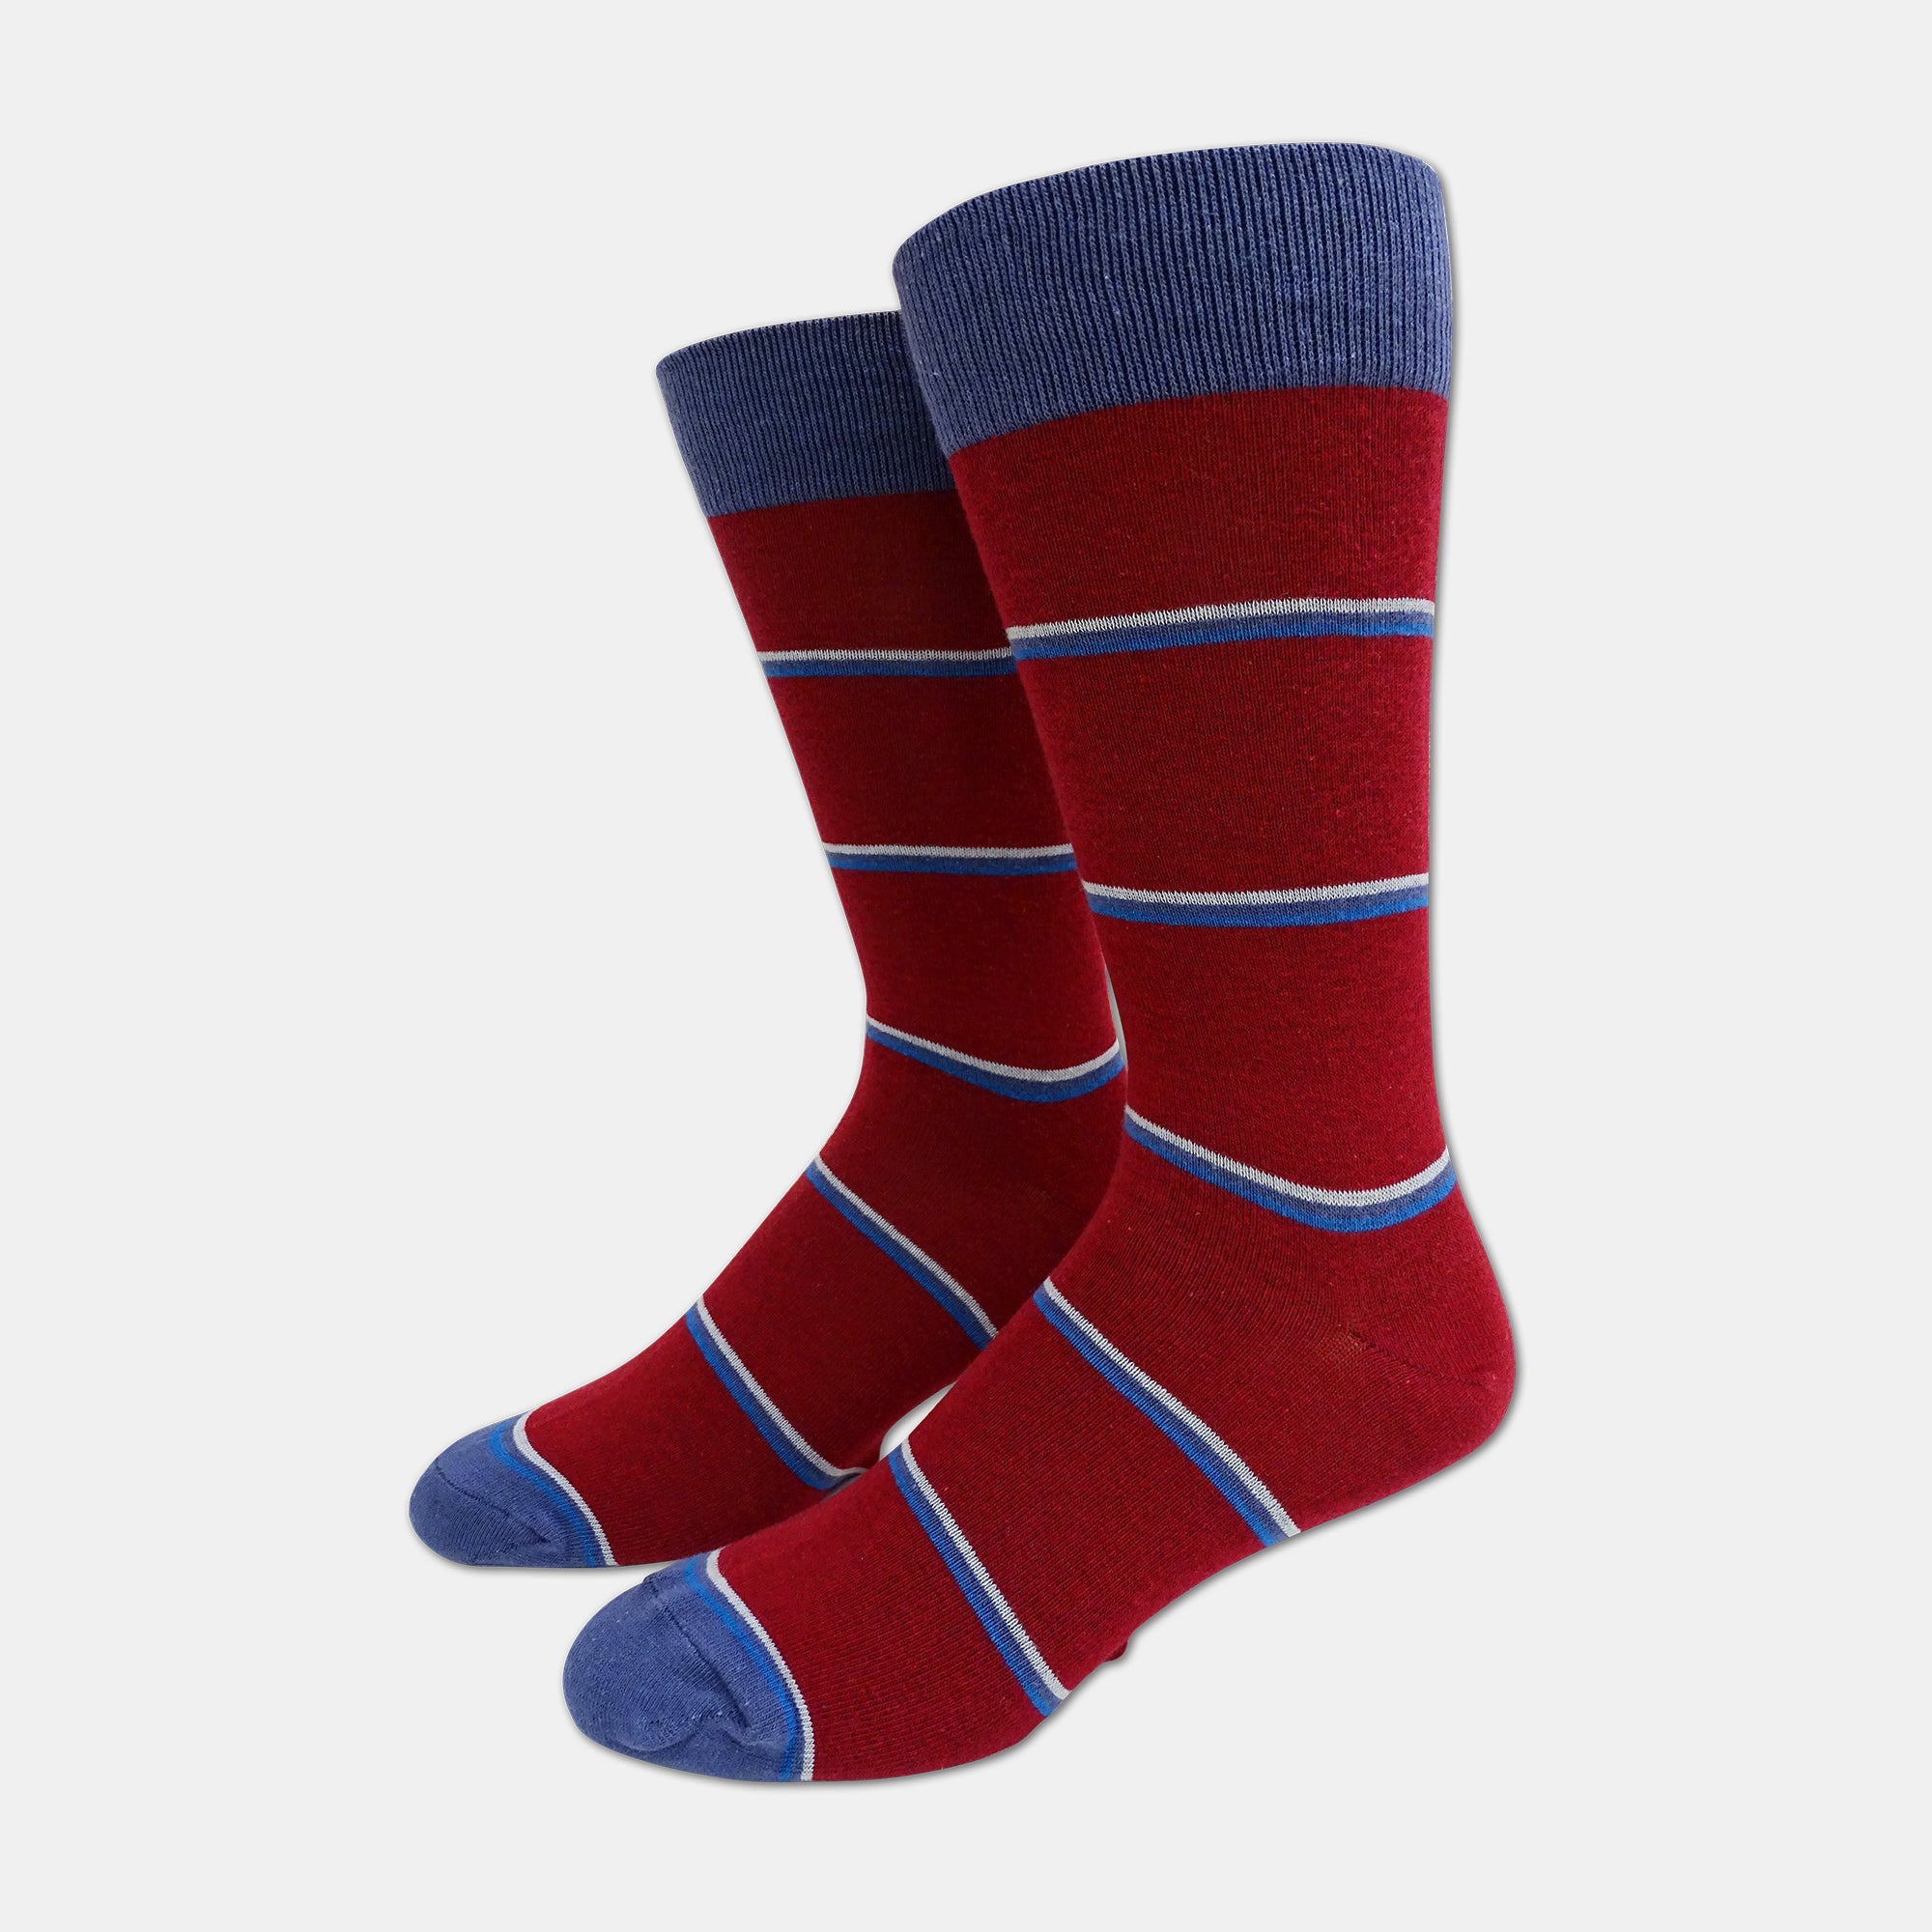 David Cotton Blend Socks